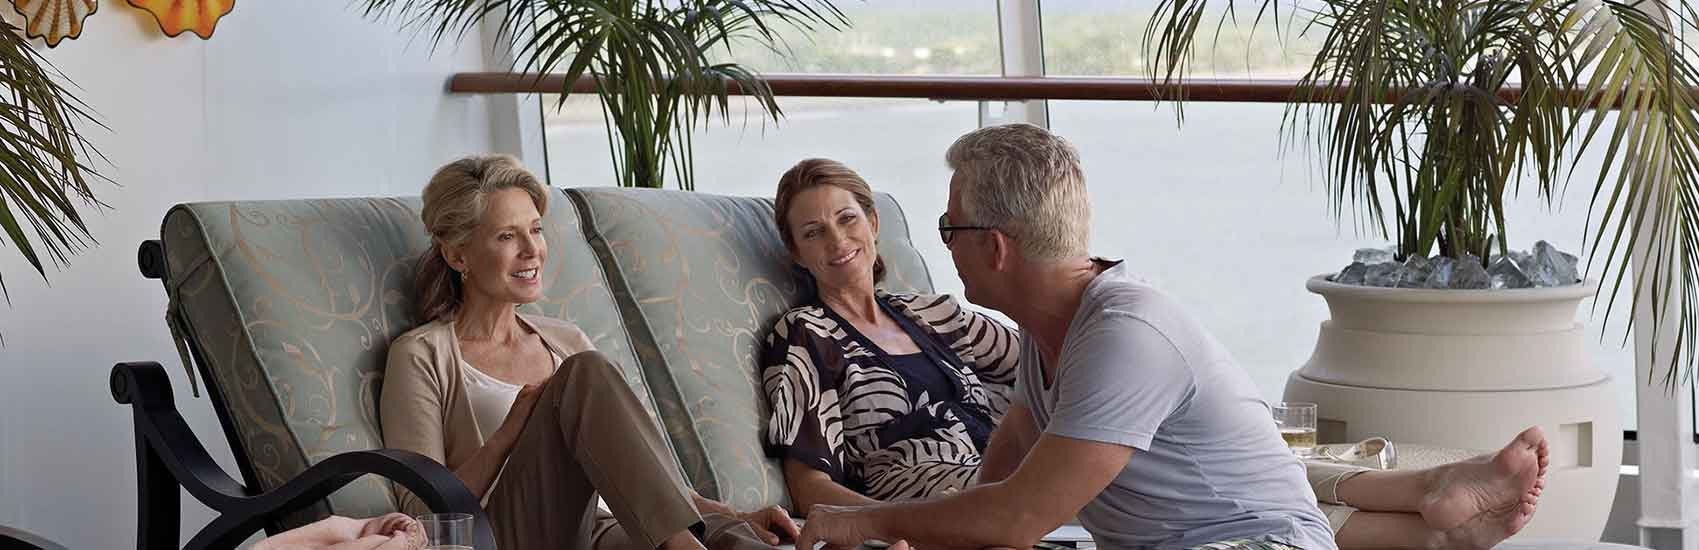 Explore Together with Oceania Cruises